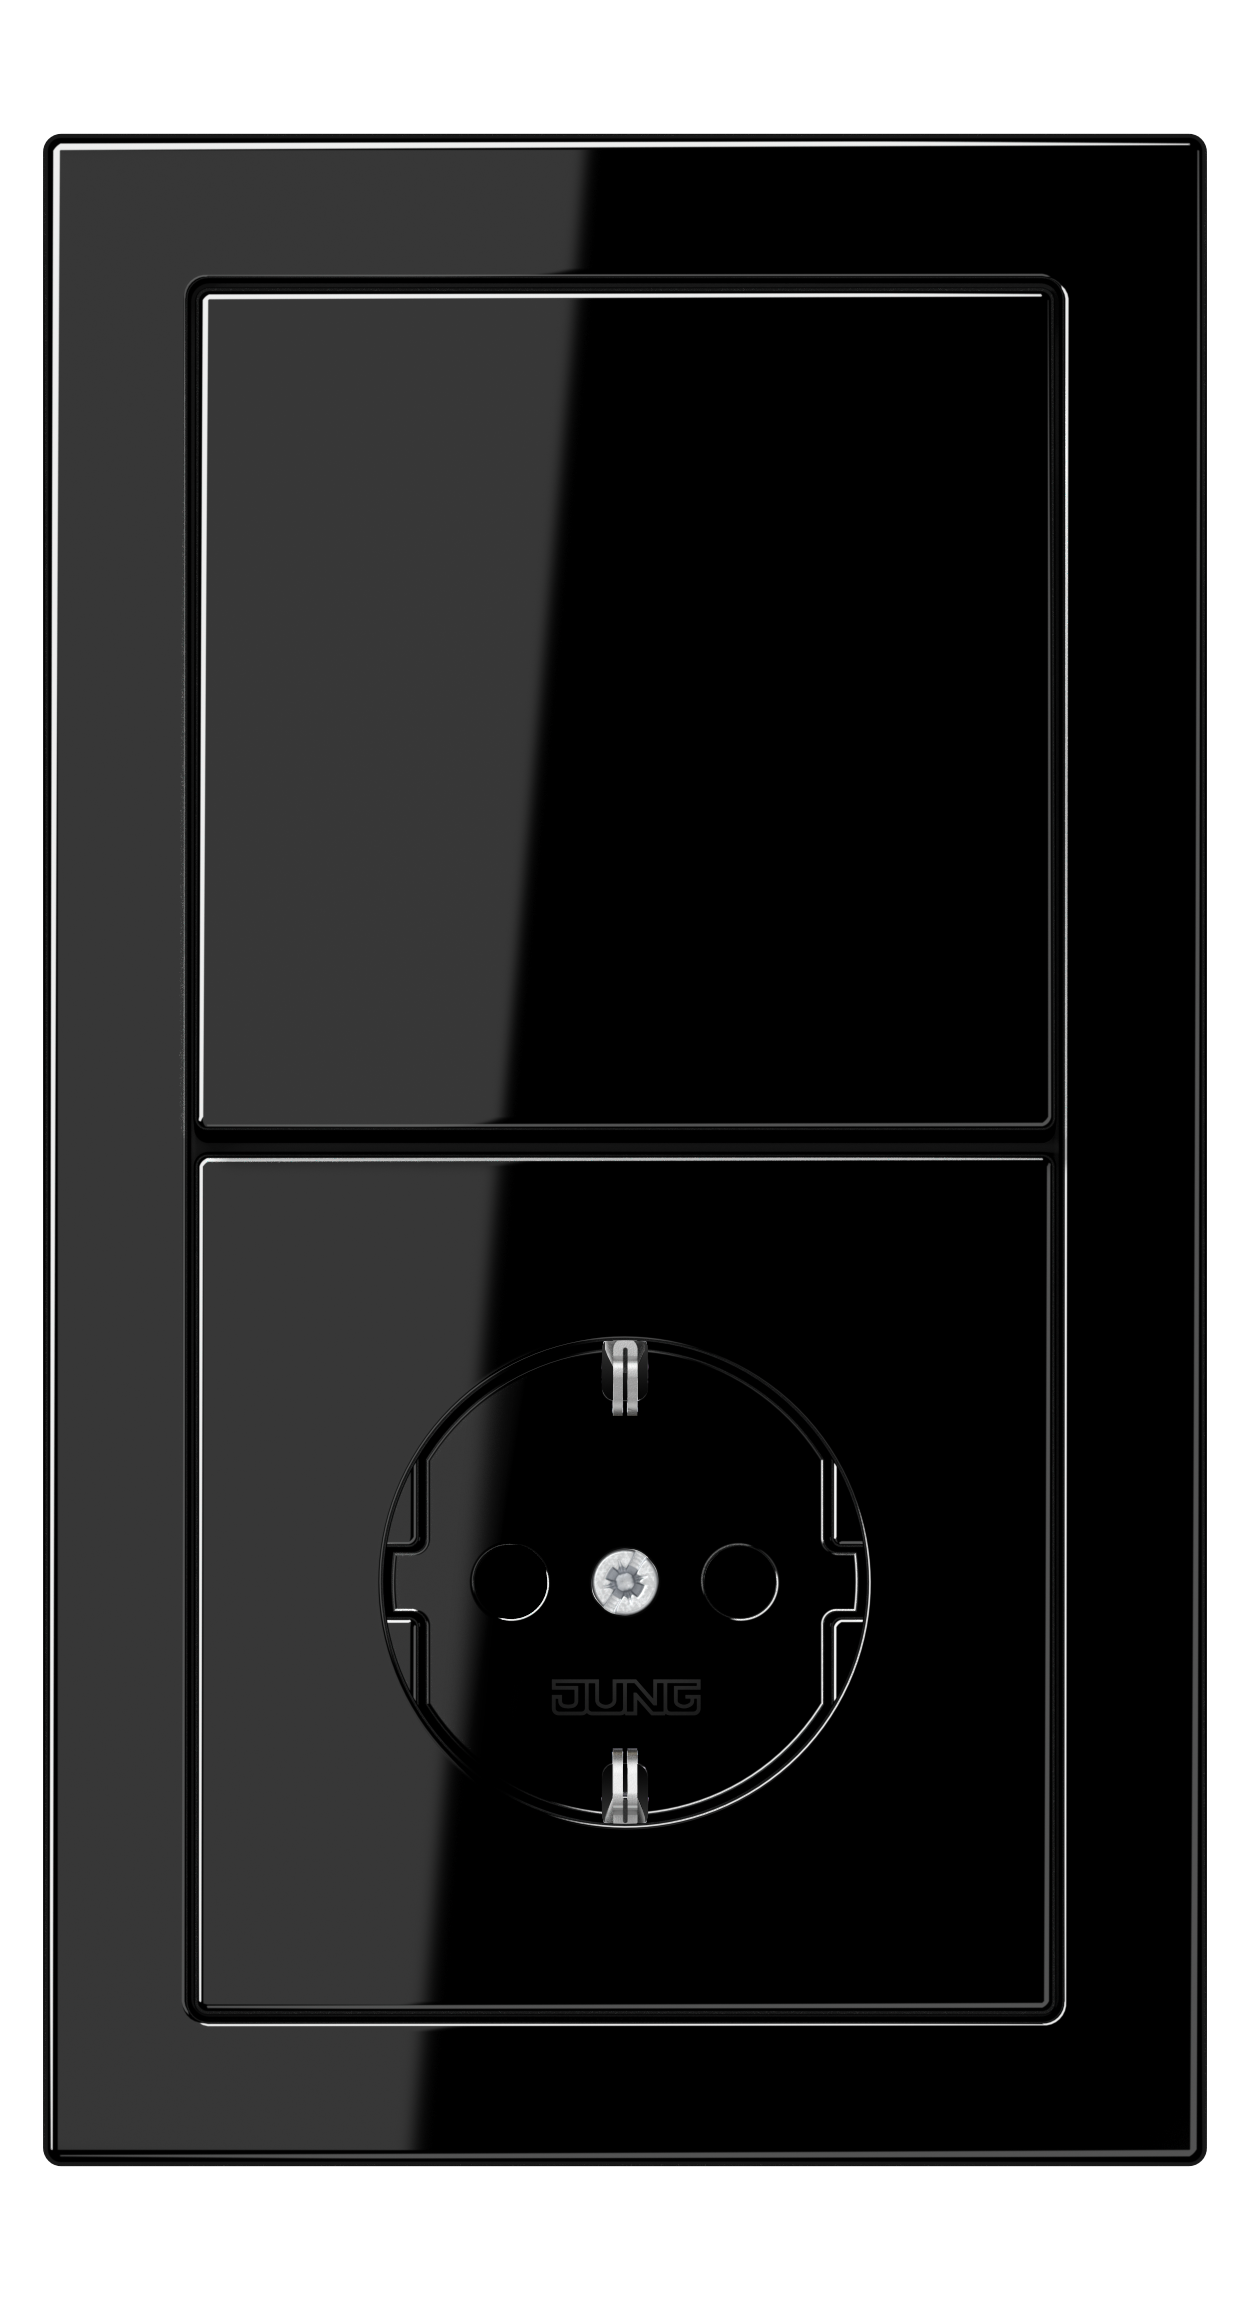 JUNG_LS_Design_black_switch_socket